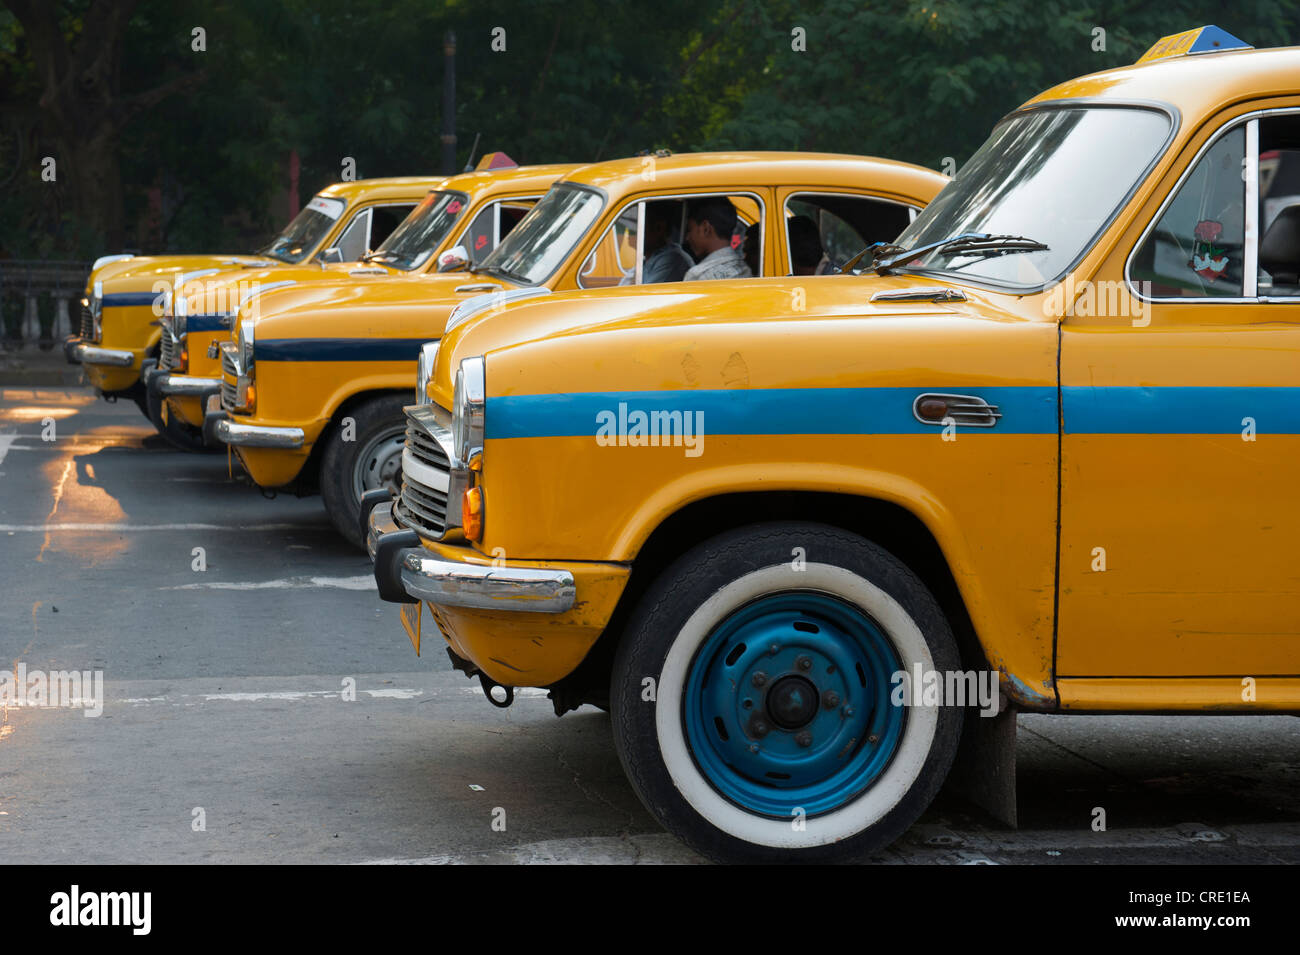 Transportation, four yellow Ambassador taxis in a row, Chowringhee, Calcutta, Kolkata, West Bengal, India, South - Stock Image